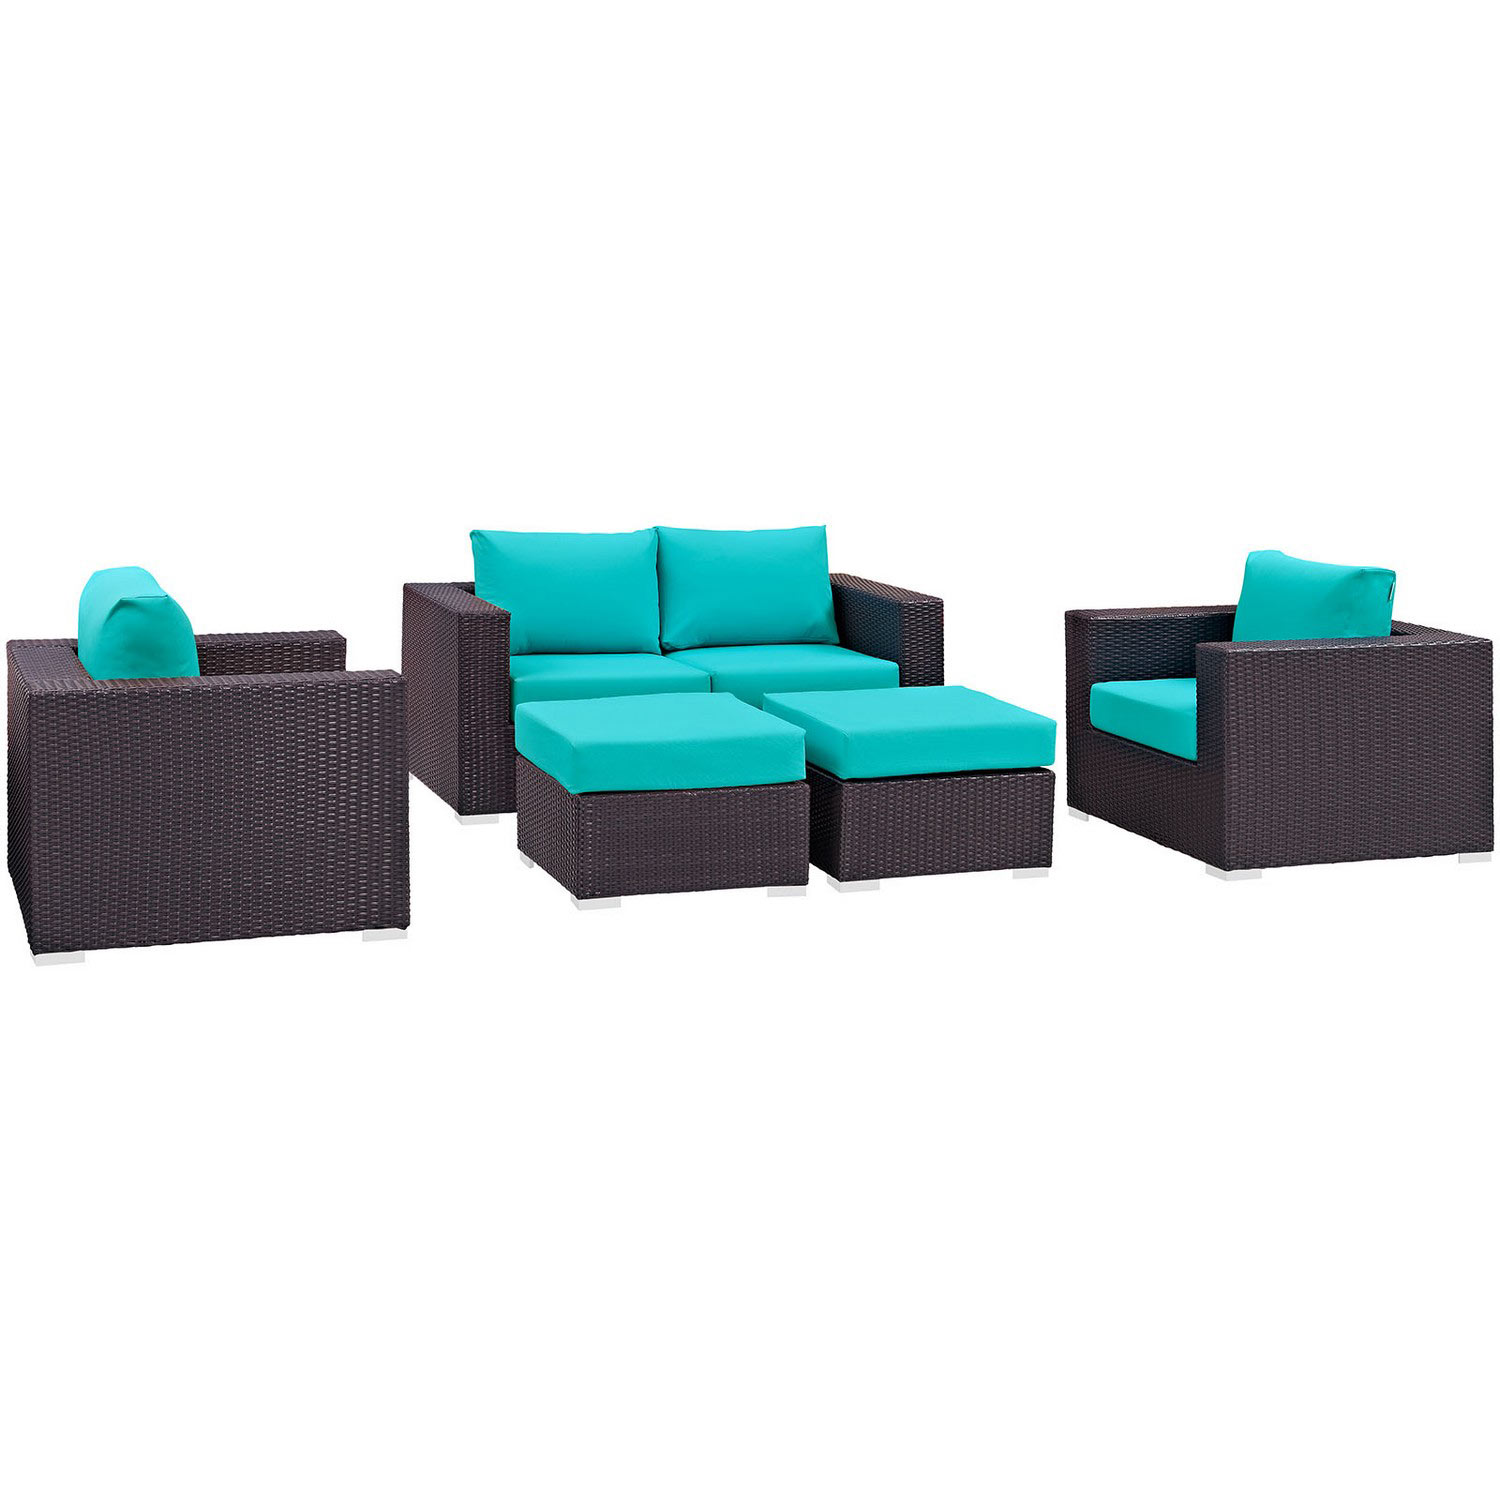 Modway Convene 5 Piece Outdoor Patio Sofa Set - Espresso Turquoise